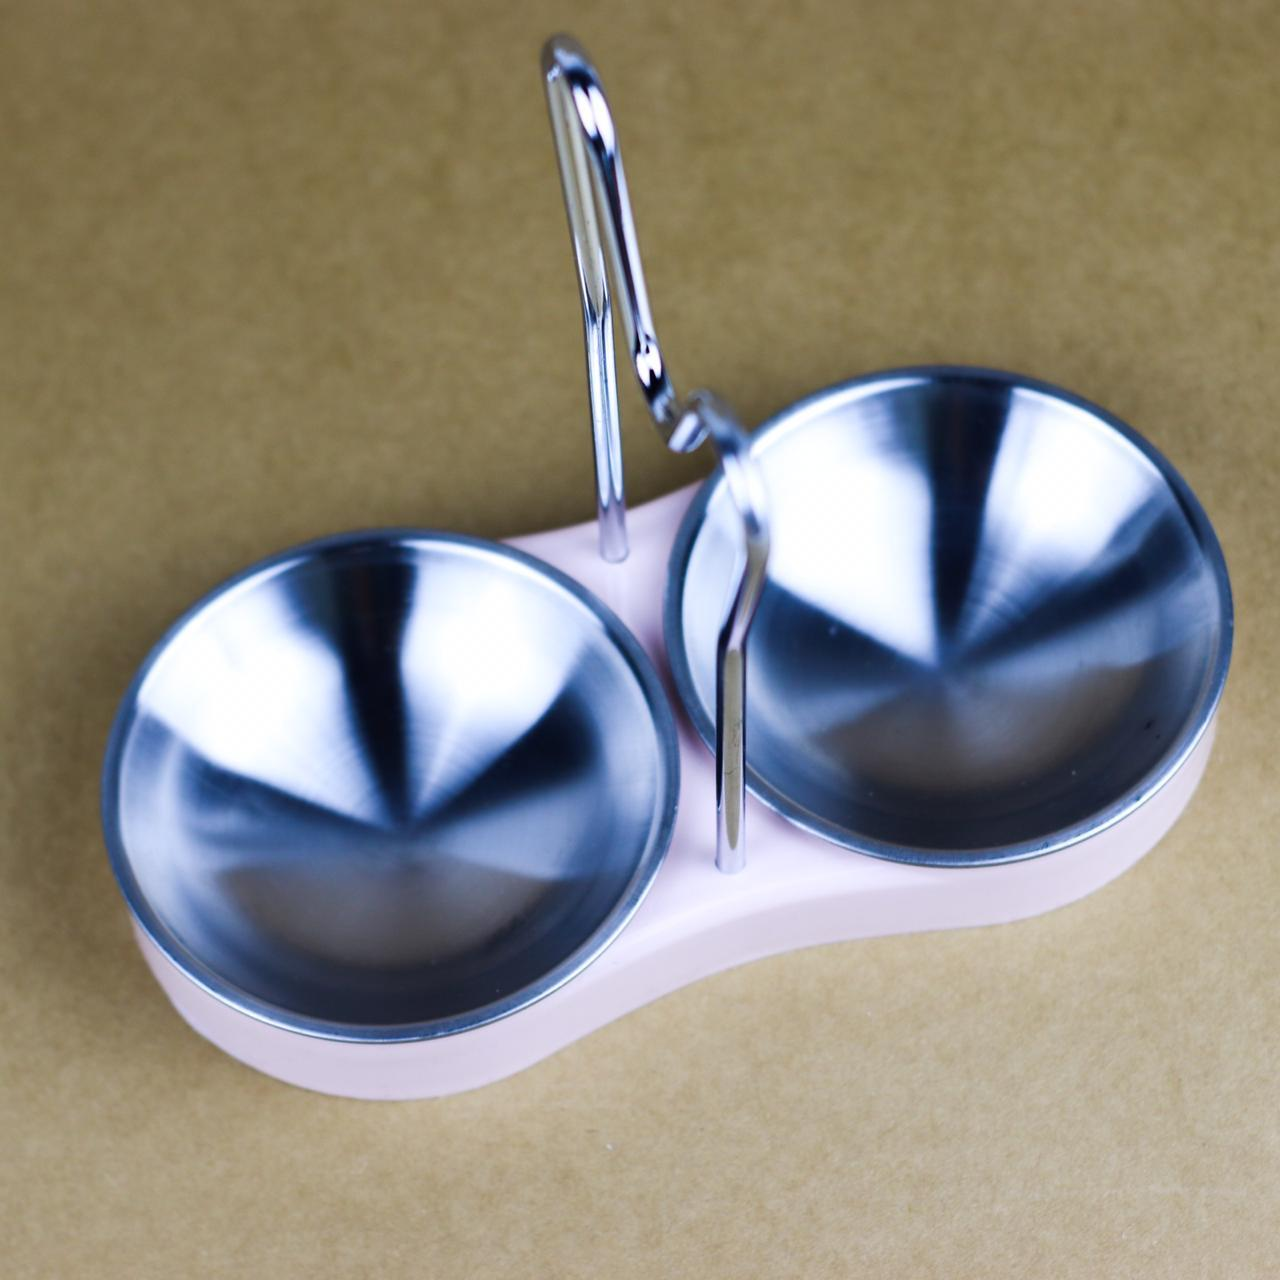 Steel spoon rest holder - waseeh.com